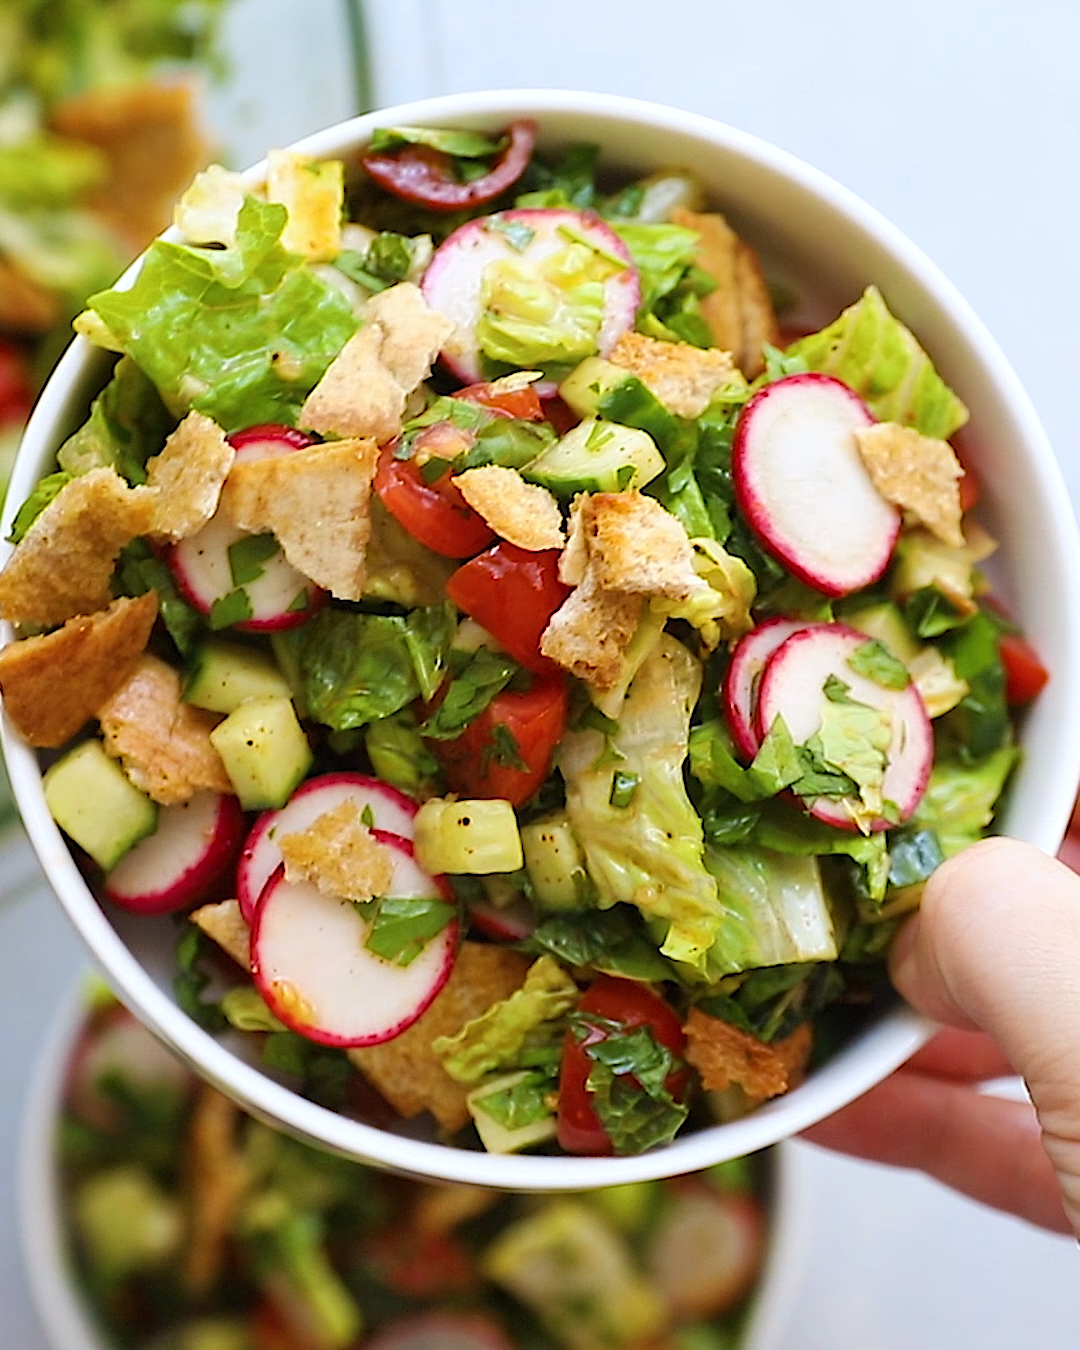 Fattoush Salad This delicious Middle Eastern fattoush salad has vegetables, fresh herbs, crispy pita bread, and a sumac dressing. Great as an appetizer or served with protein for a meal.